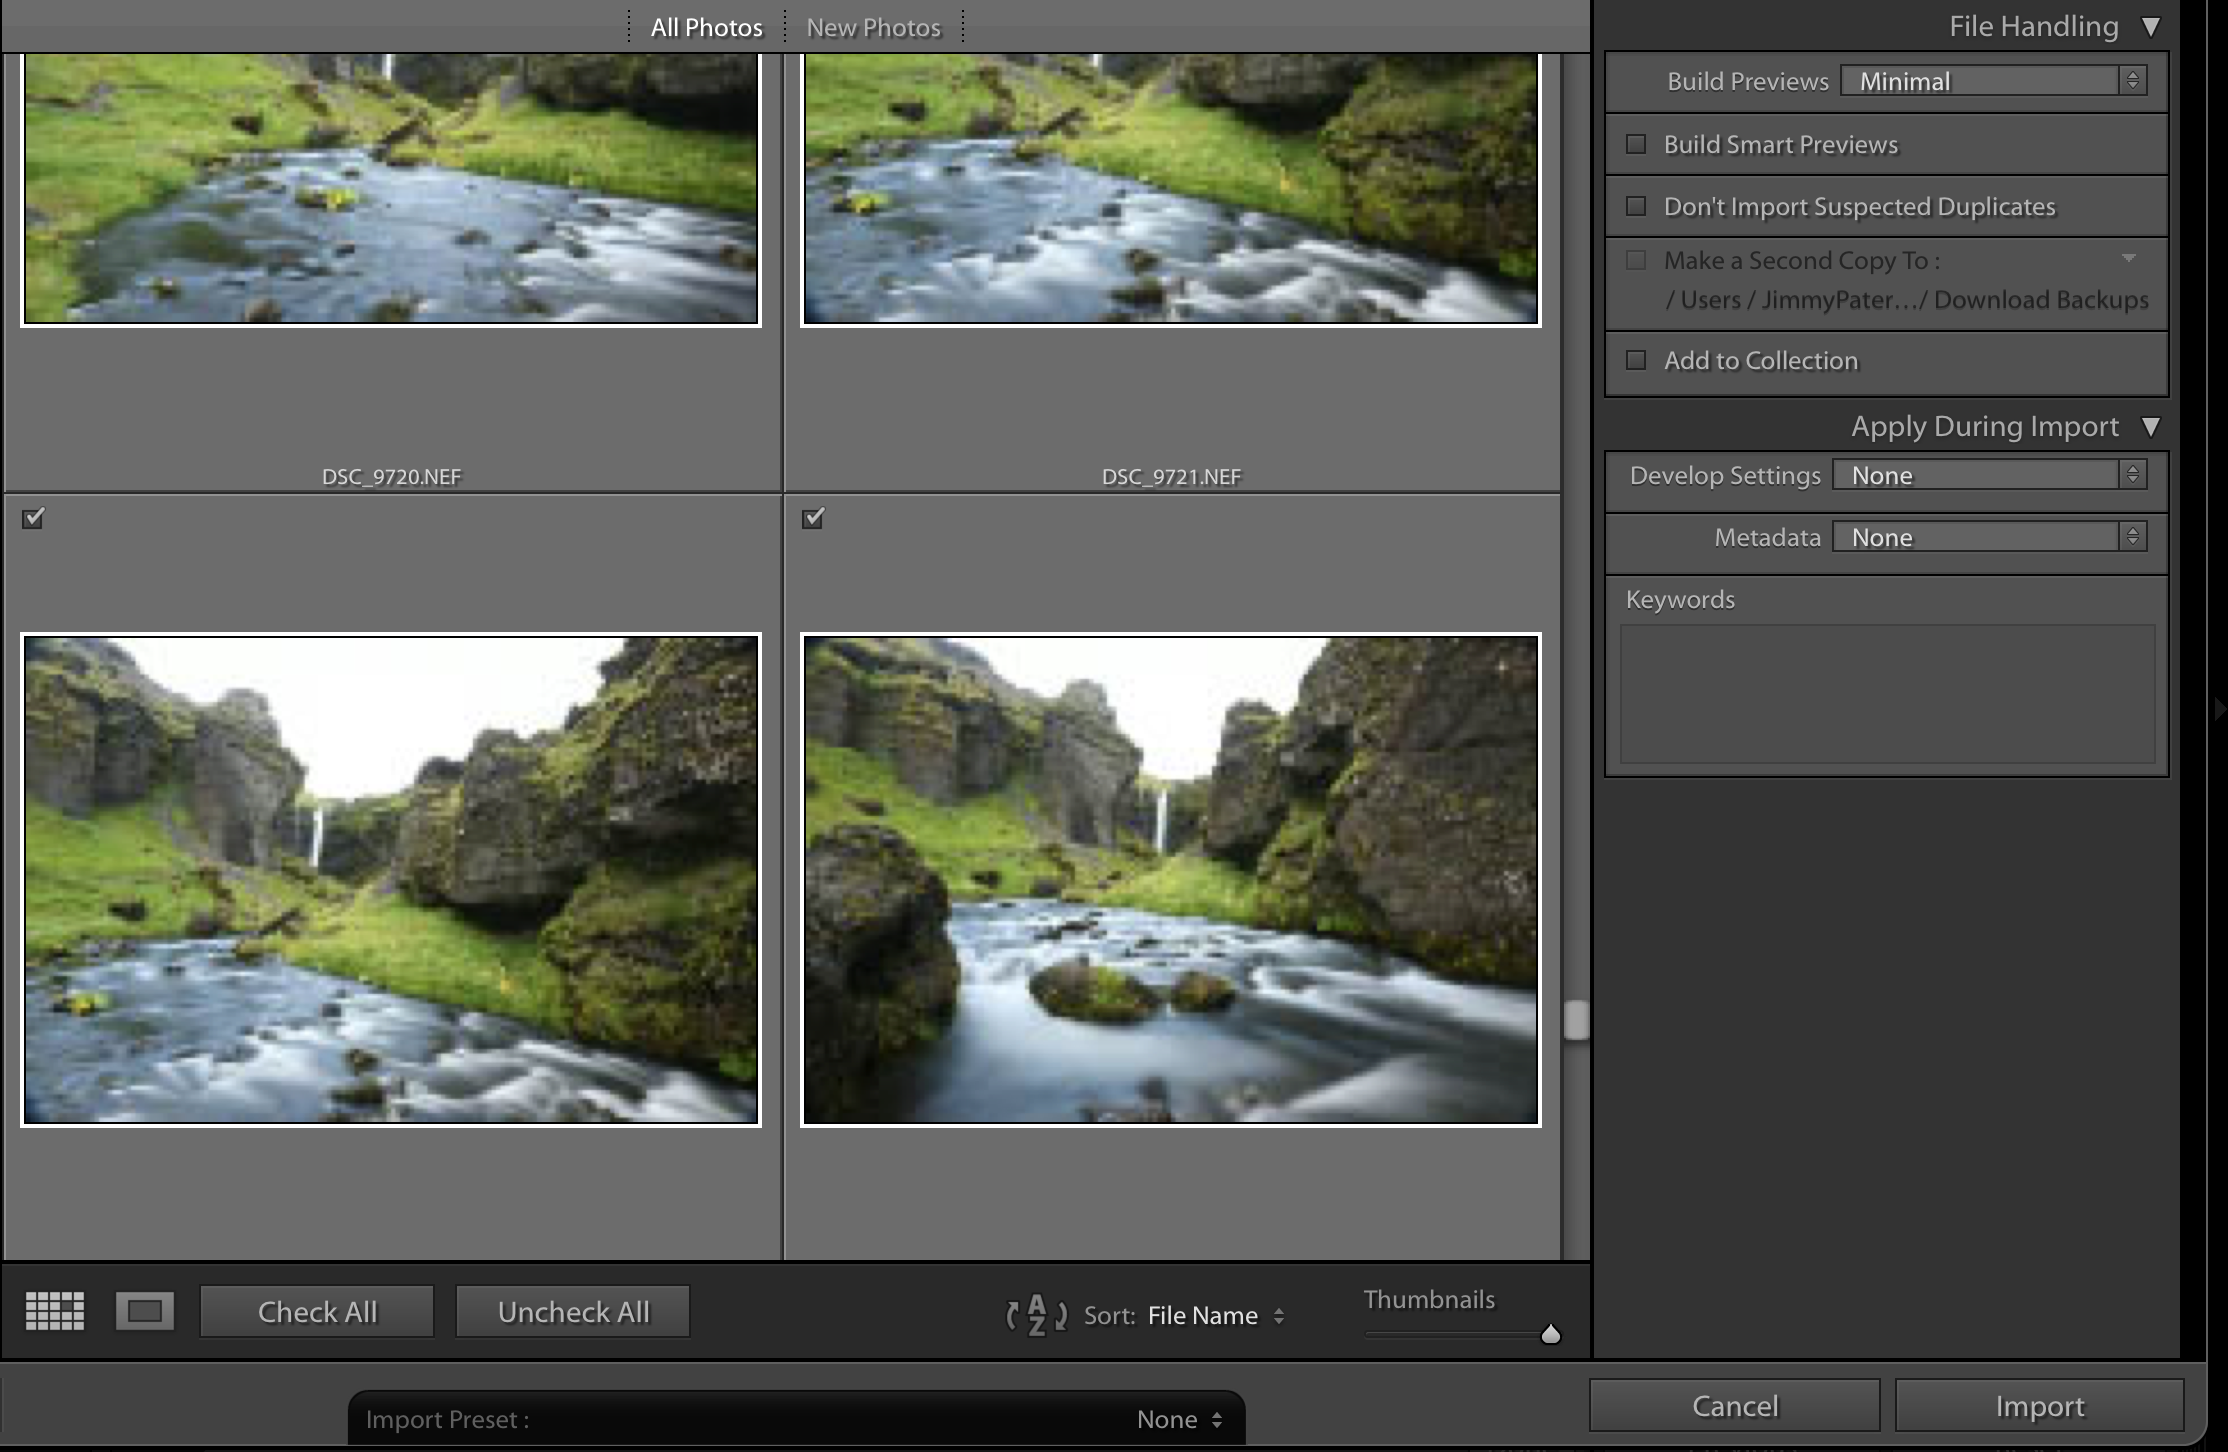 The library module in the Lightroom interface